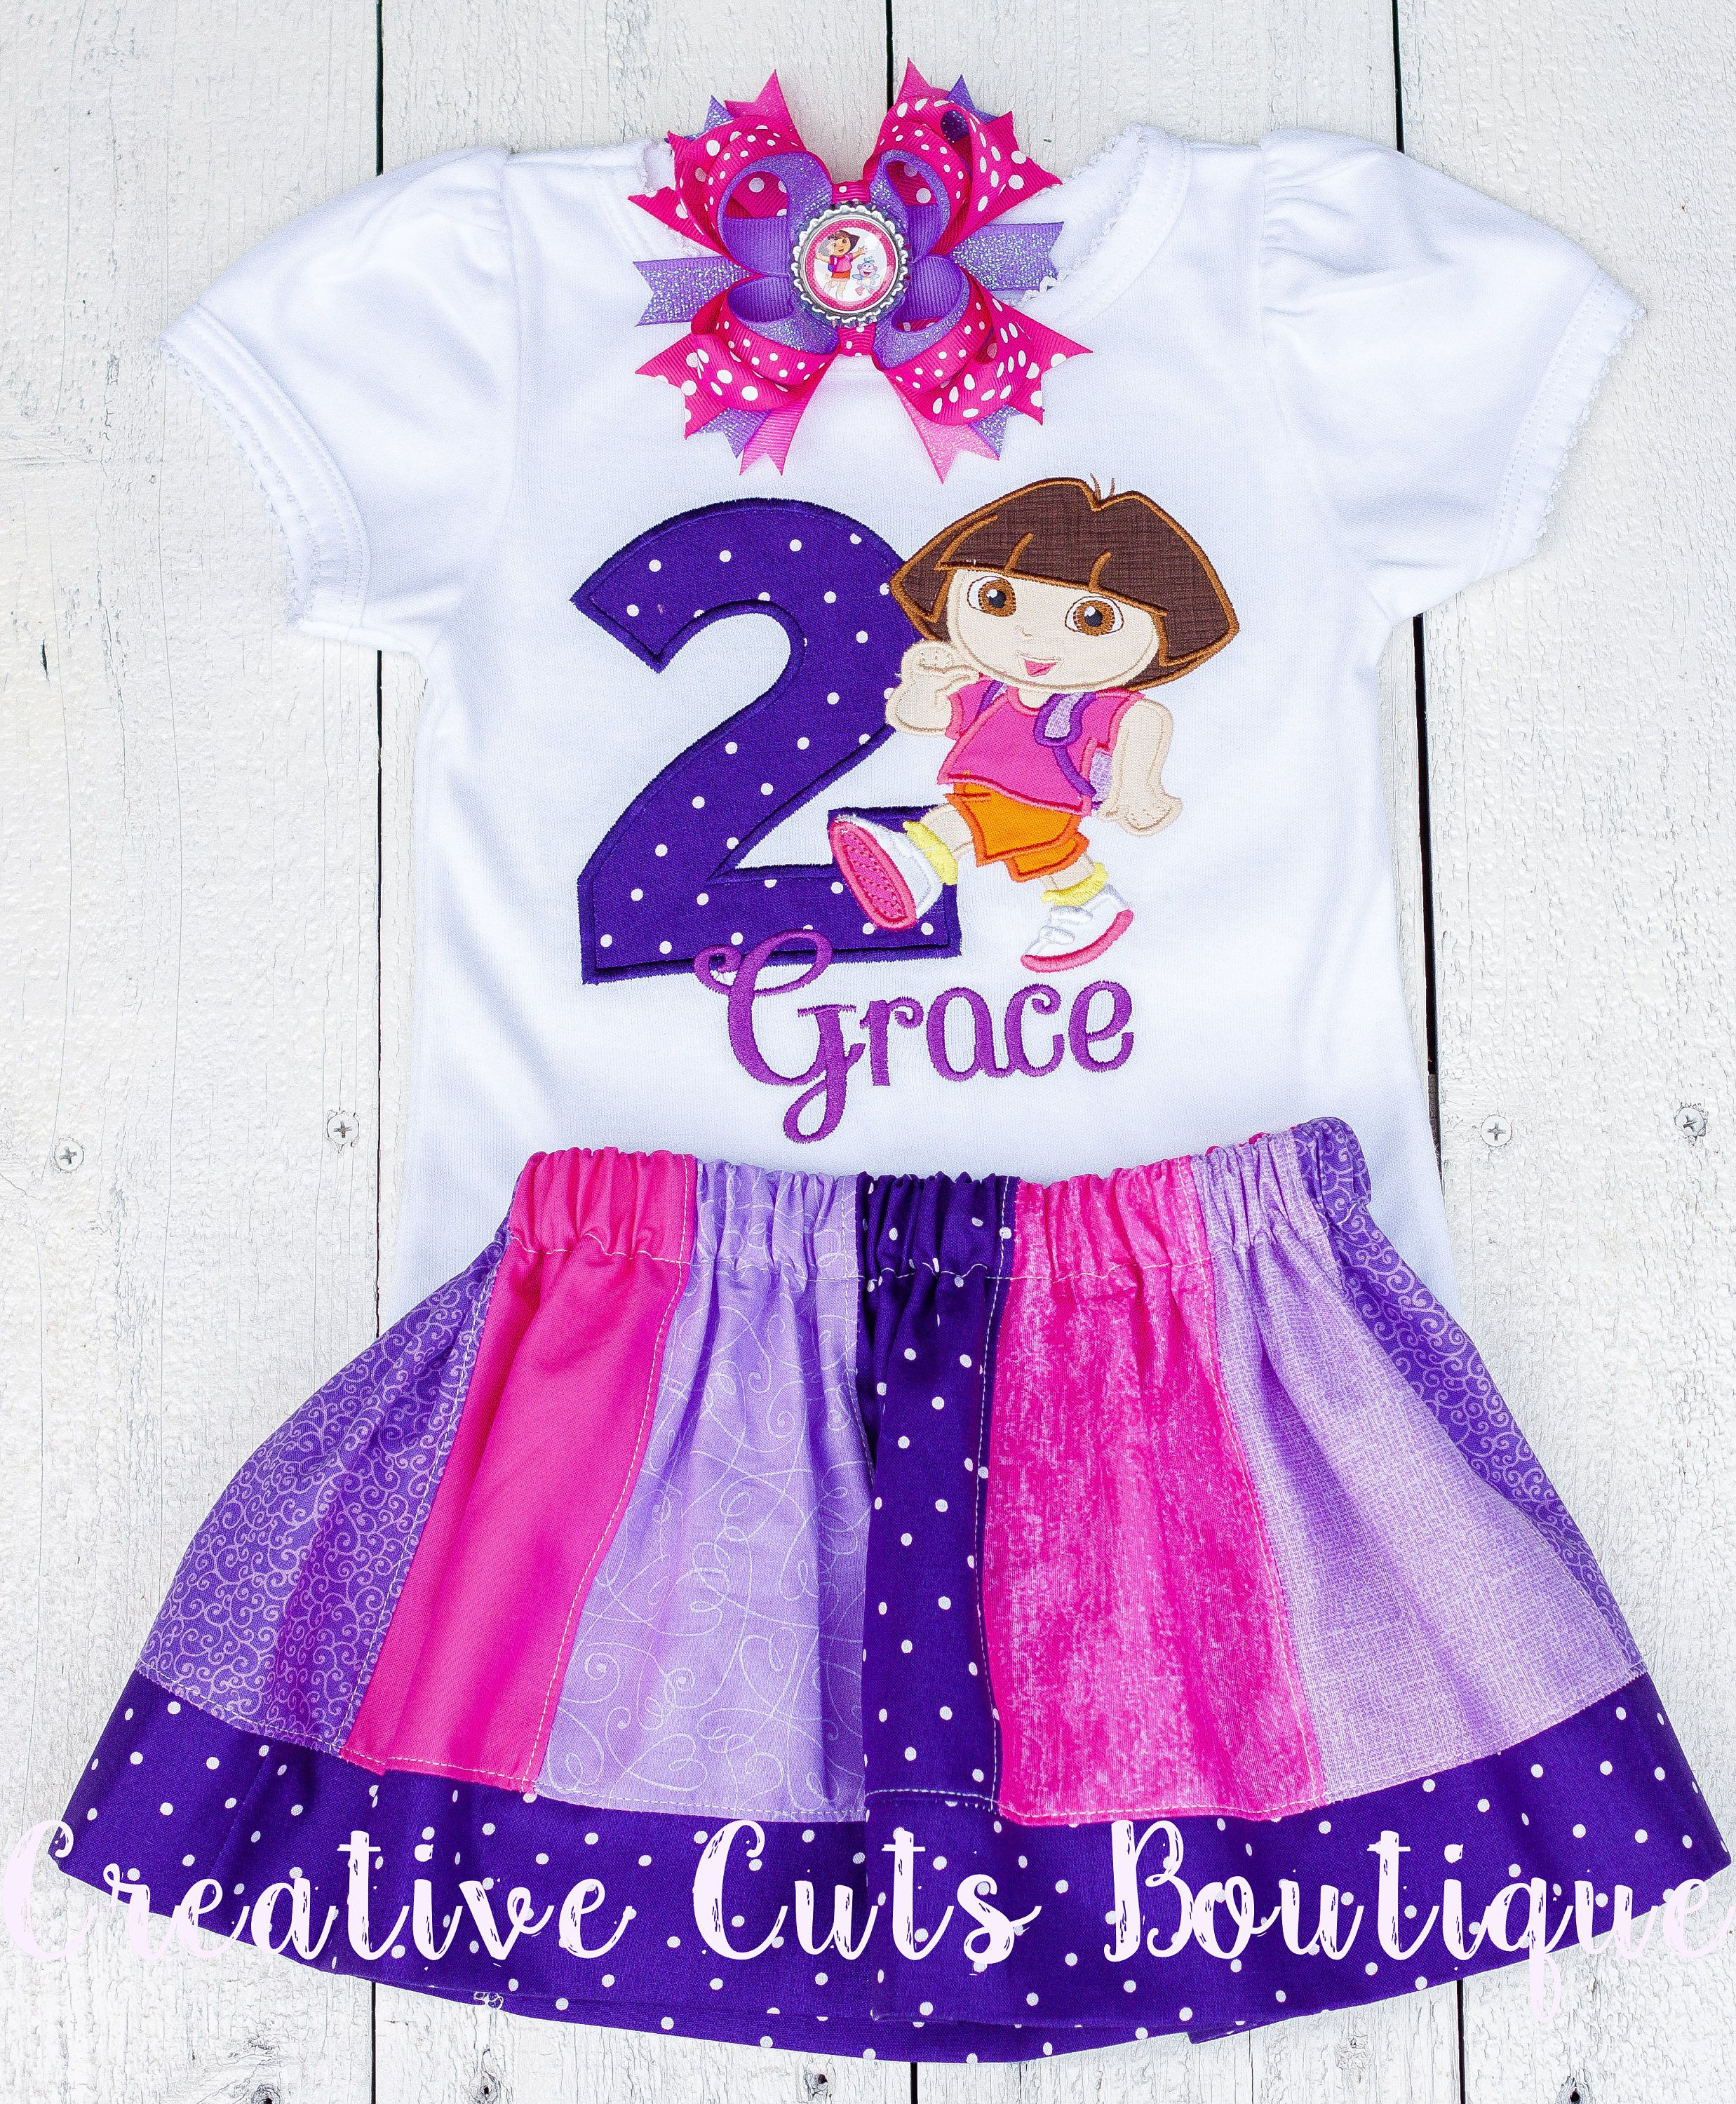 Dora The Explorer Birthday Shirt Outfit Personalized By CreativeCutsBoutique On Etsy